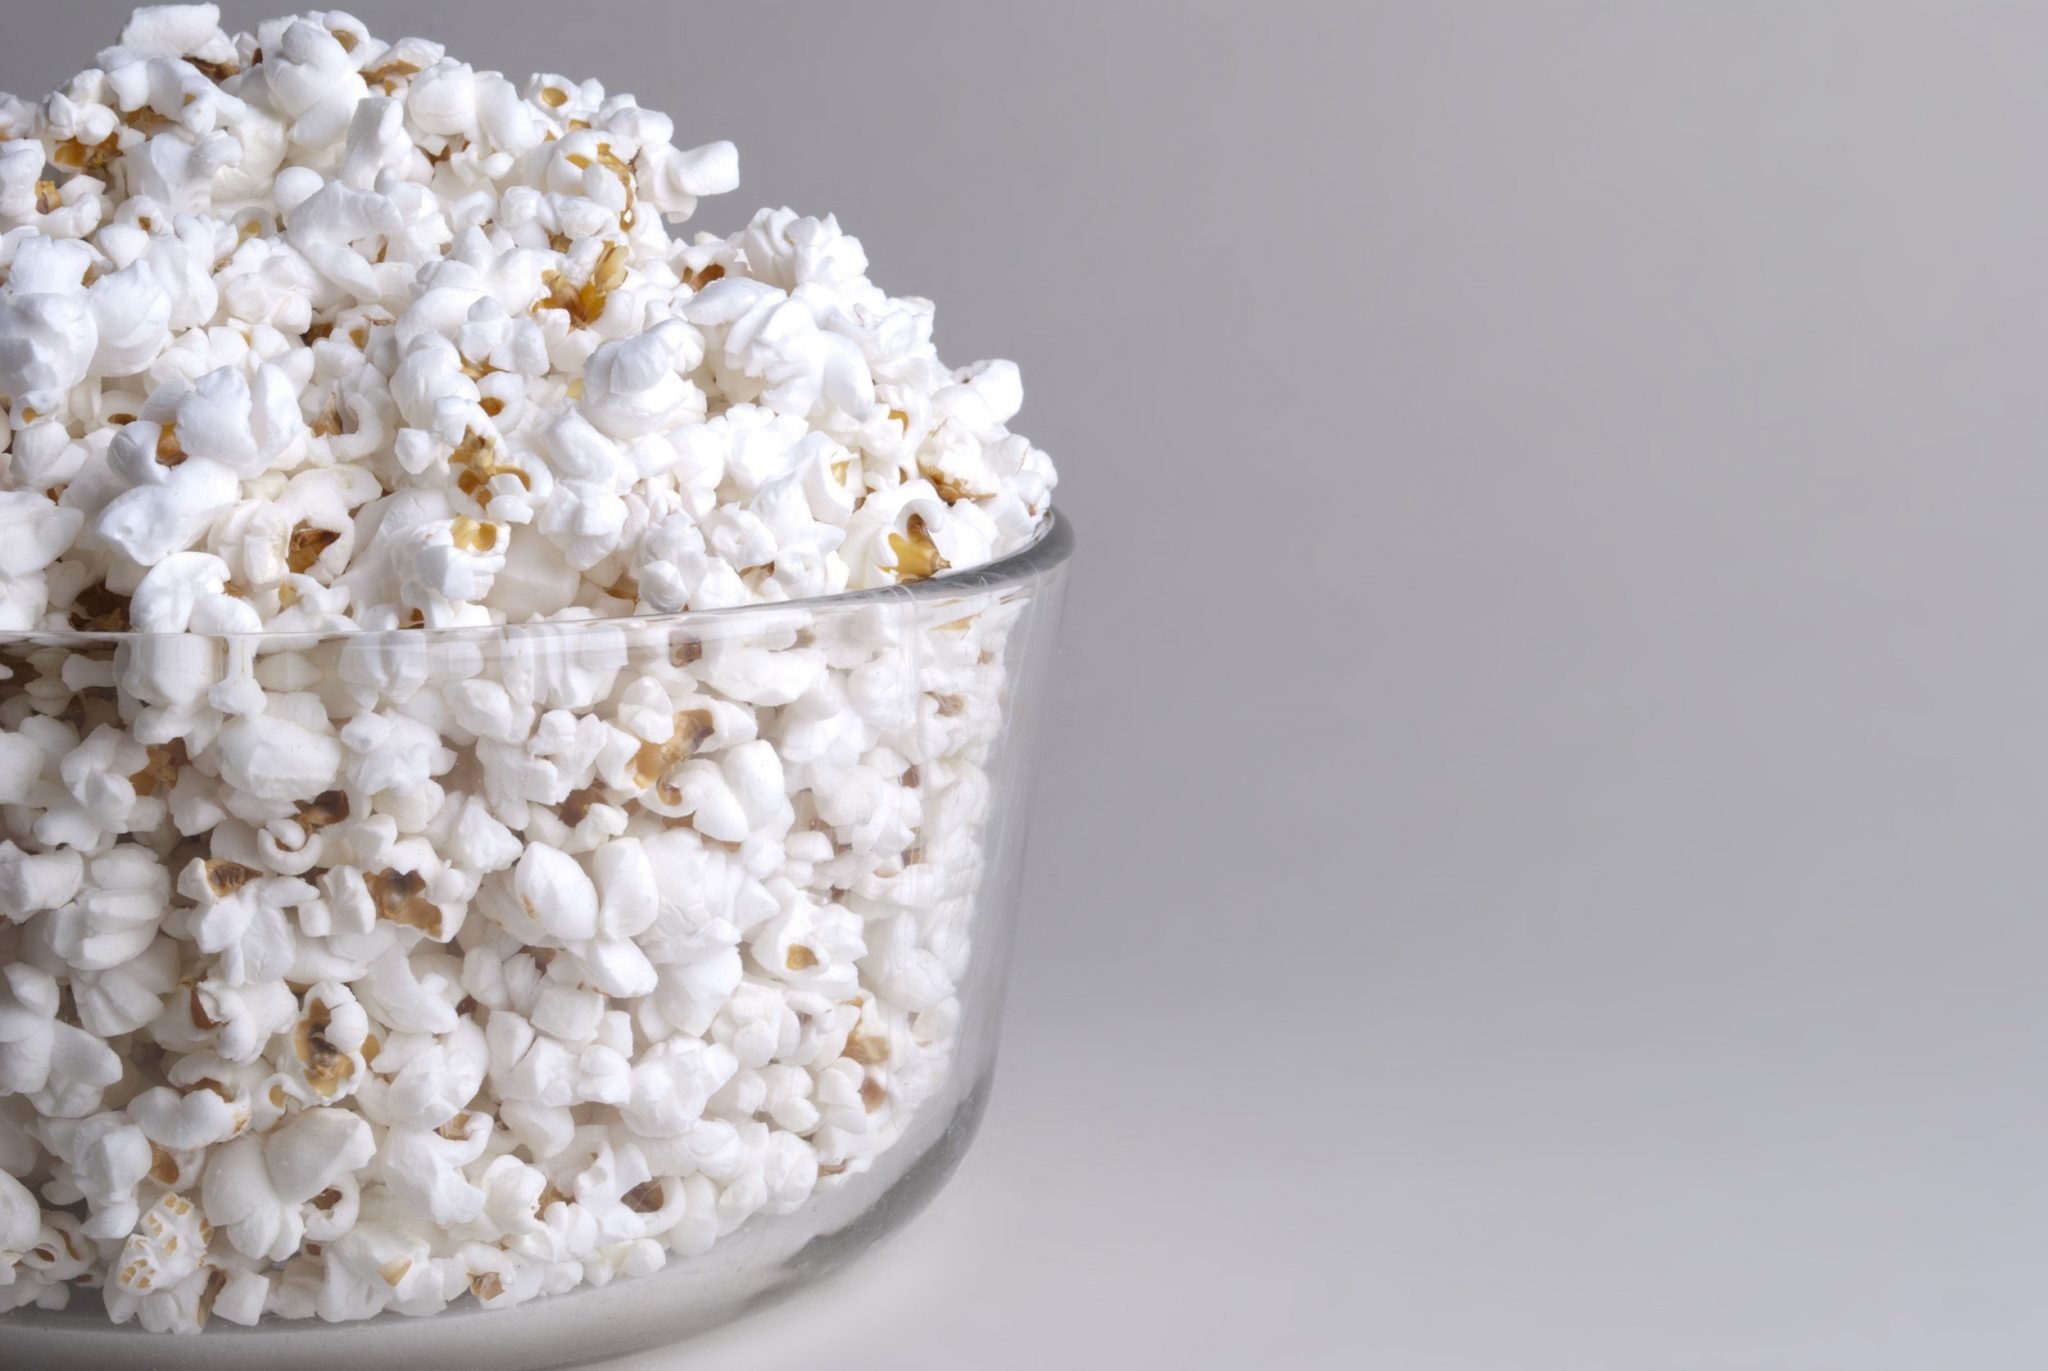 petite-maize-popcorn-in-bowl-eye-level-left